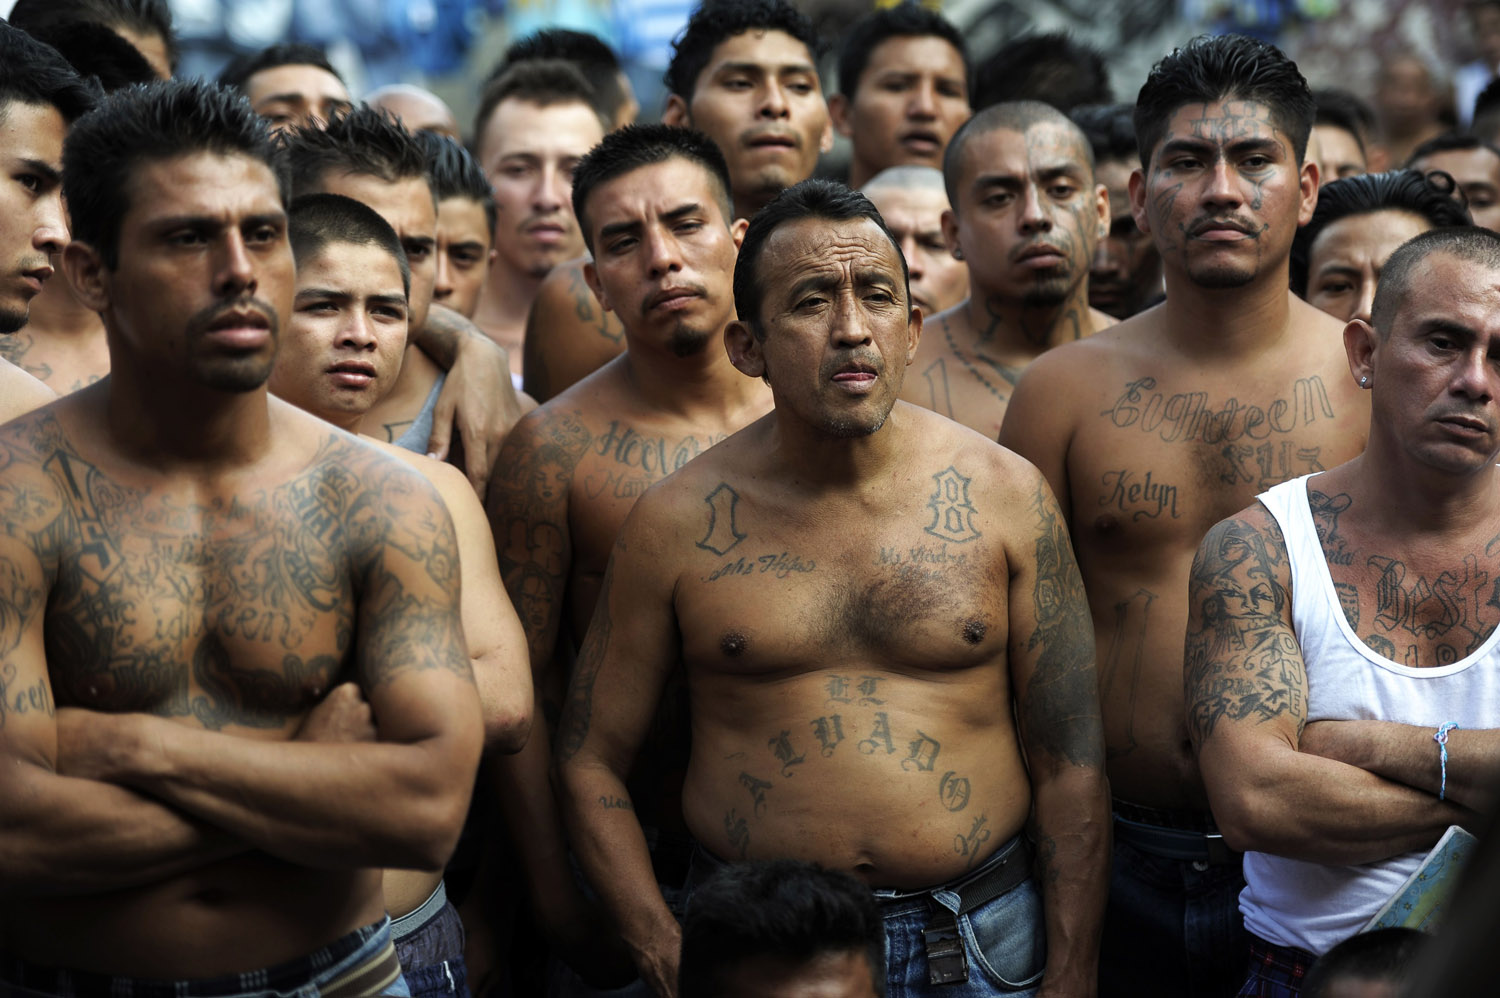 ms 13 a dangerous gang Here is a list of the 10 most dangerous gangs on earth 10 ms-13 la mara salvatrucha, commonly known as ms or ms-13, is a street gang started in the 1980s by el salvadoran transplants living in los angeles.